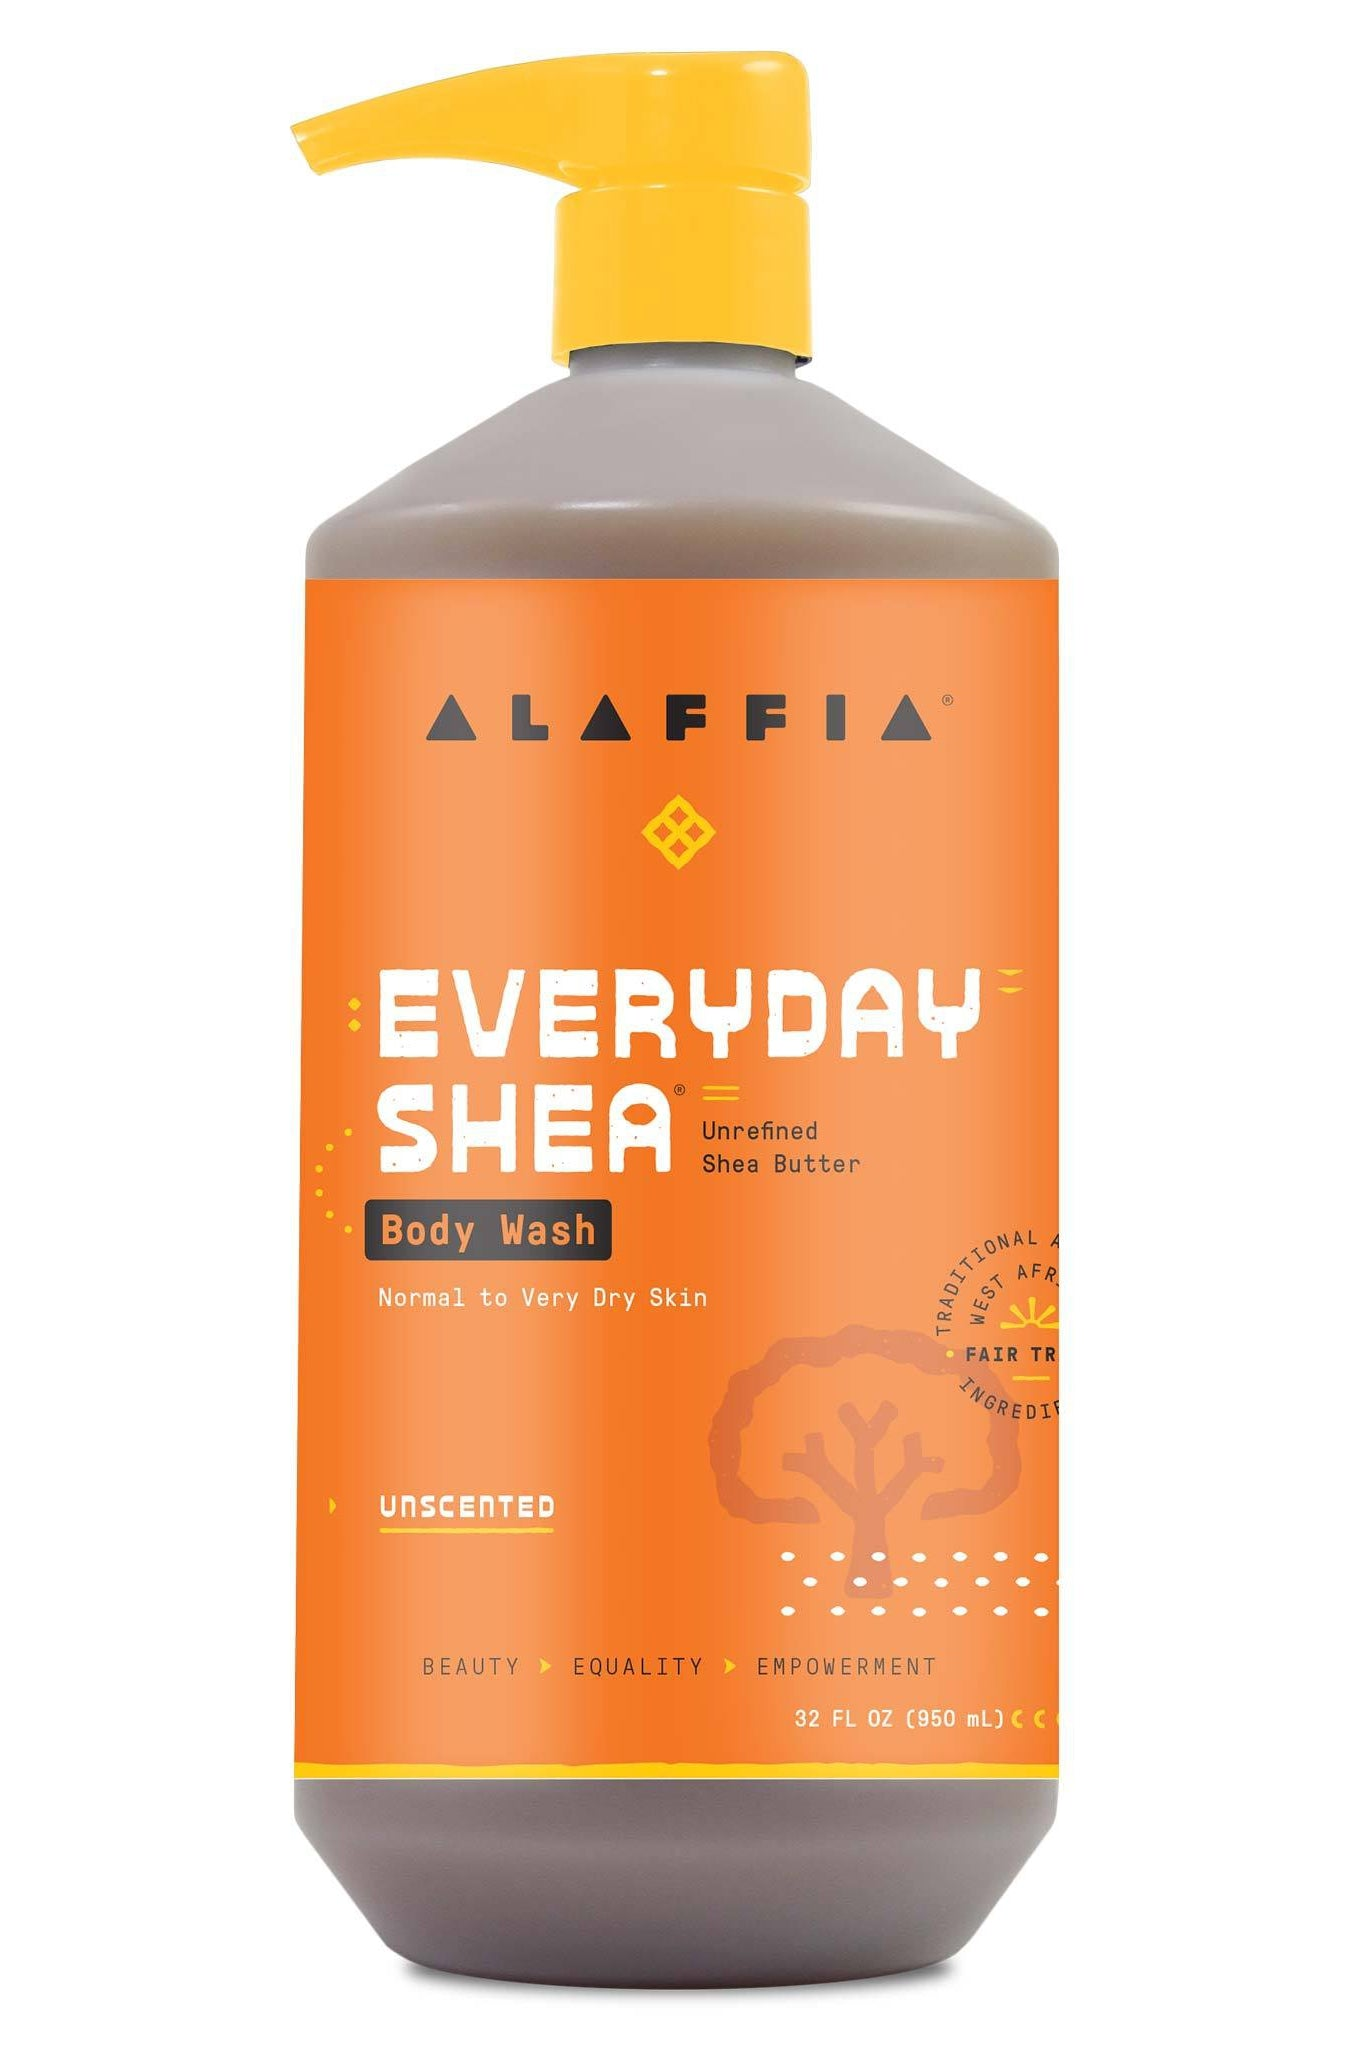 Alaffia Everyday Shea Body Wash - Unscented 950 ml